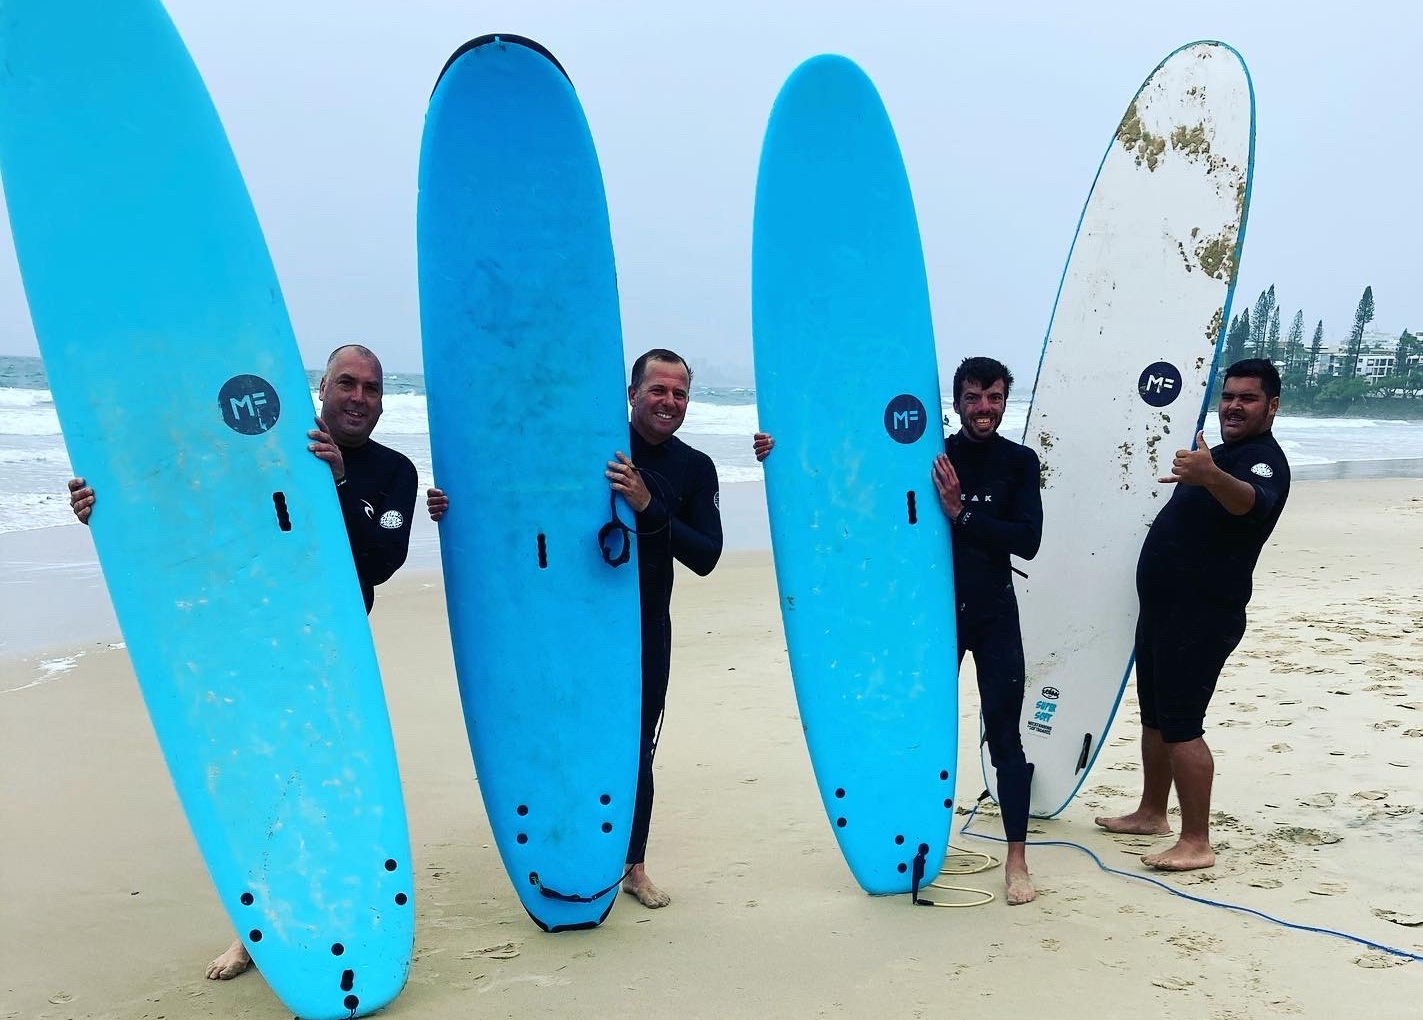 Making Waves in Mental Health - Shining a Light on Surf Therapy